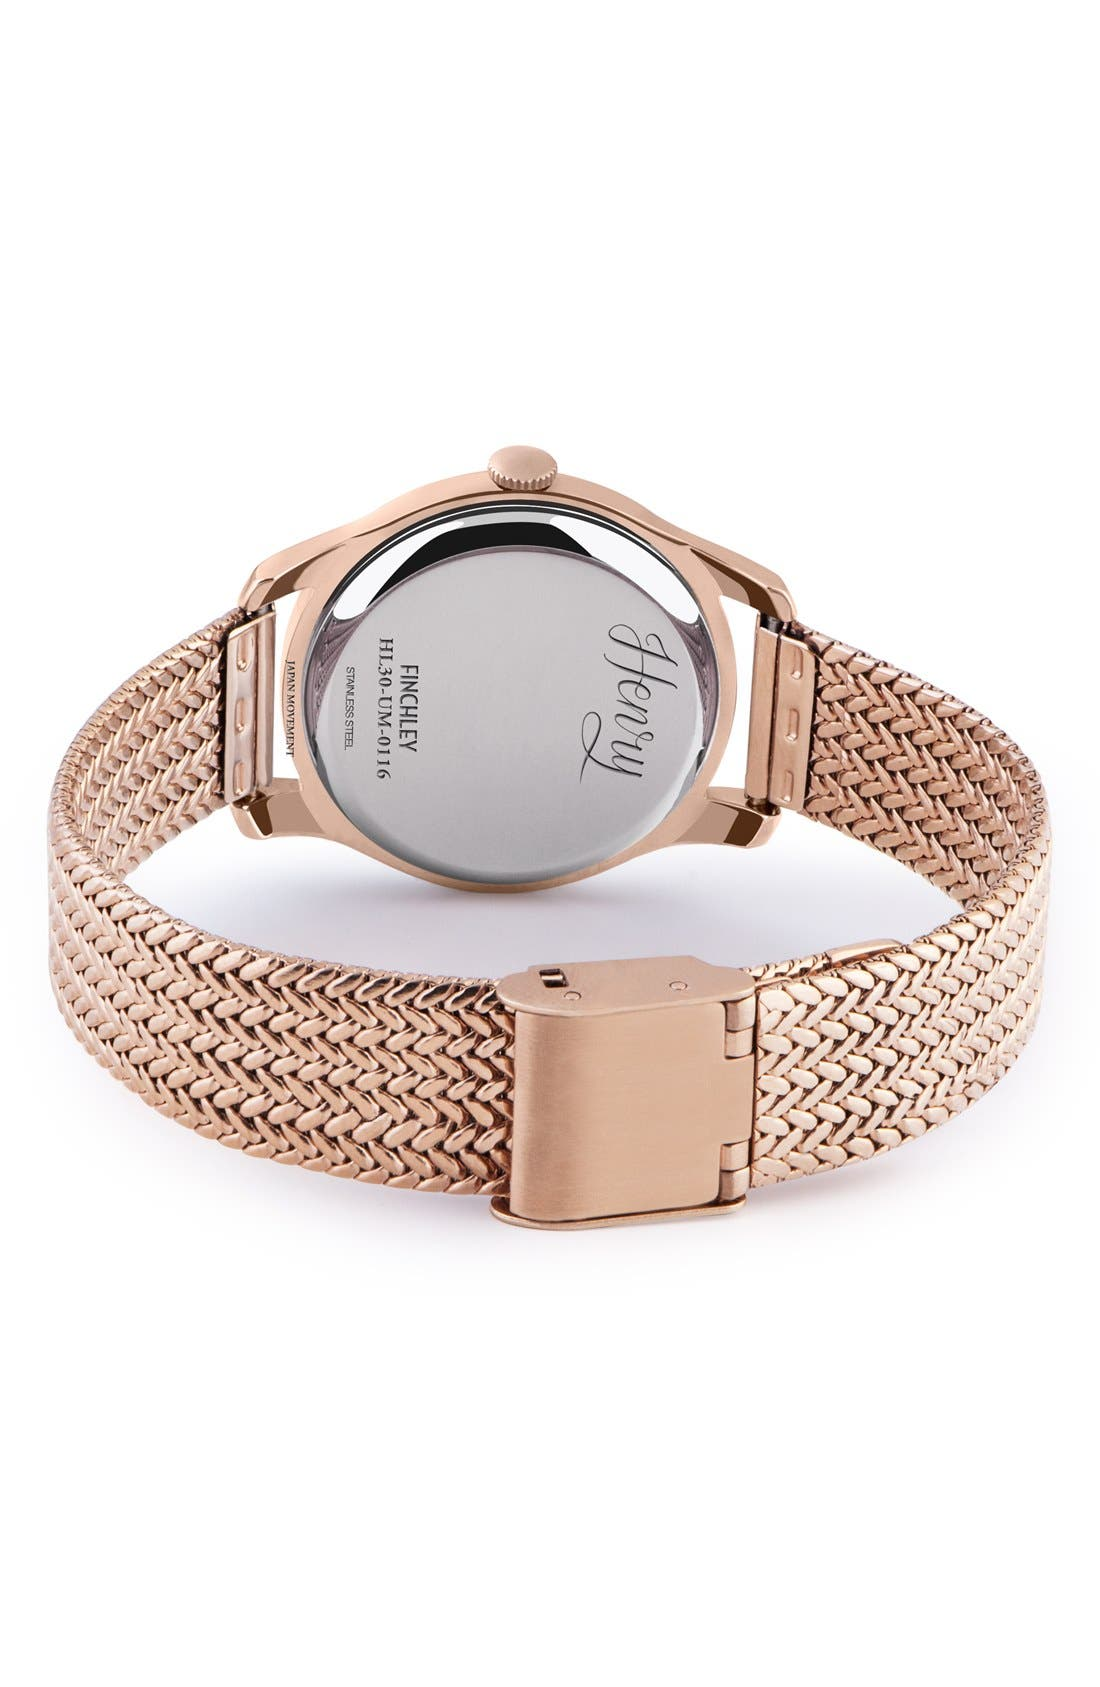 'Finchley' Round Mesh Strap Watch, 30mm,                             Alternate thumbnail 2, color,                             Rose Gold/ Slate Grey